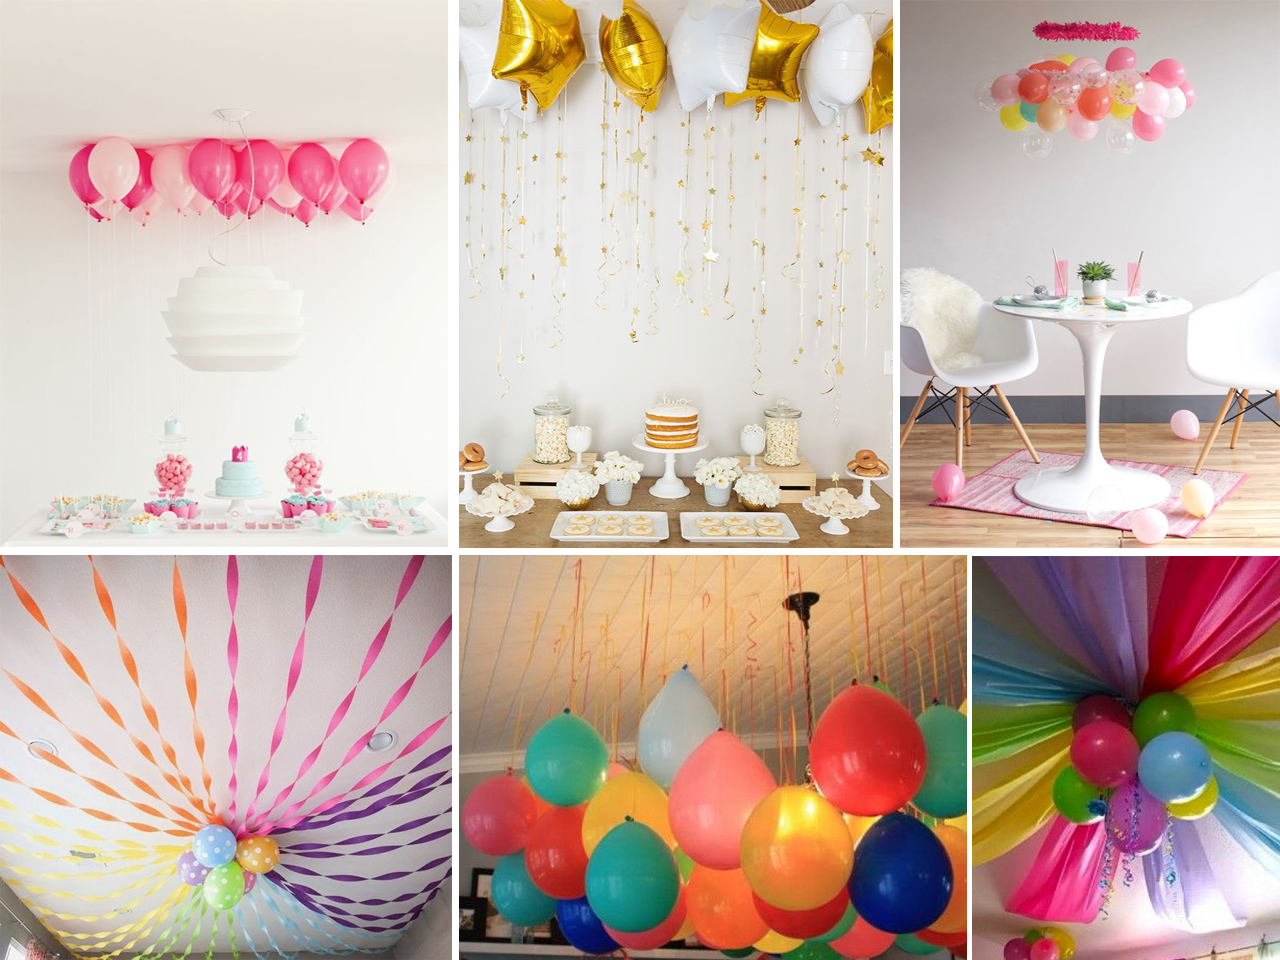 Descubre c mo decorar con globos con estas fant sticas ideas - Ideas decoracion fiesta ...